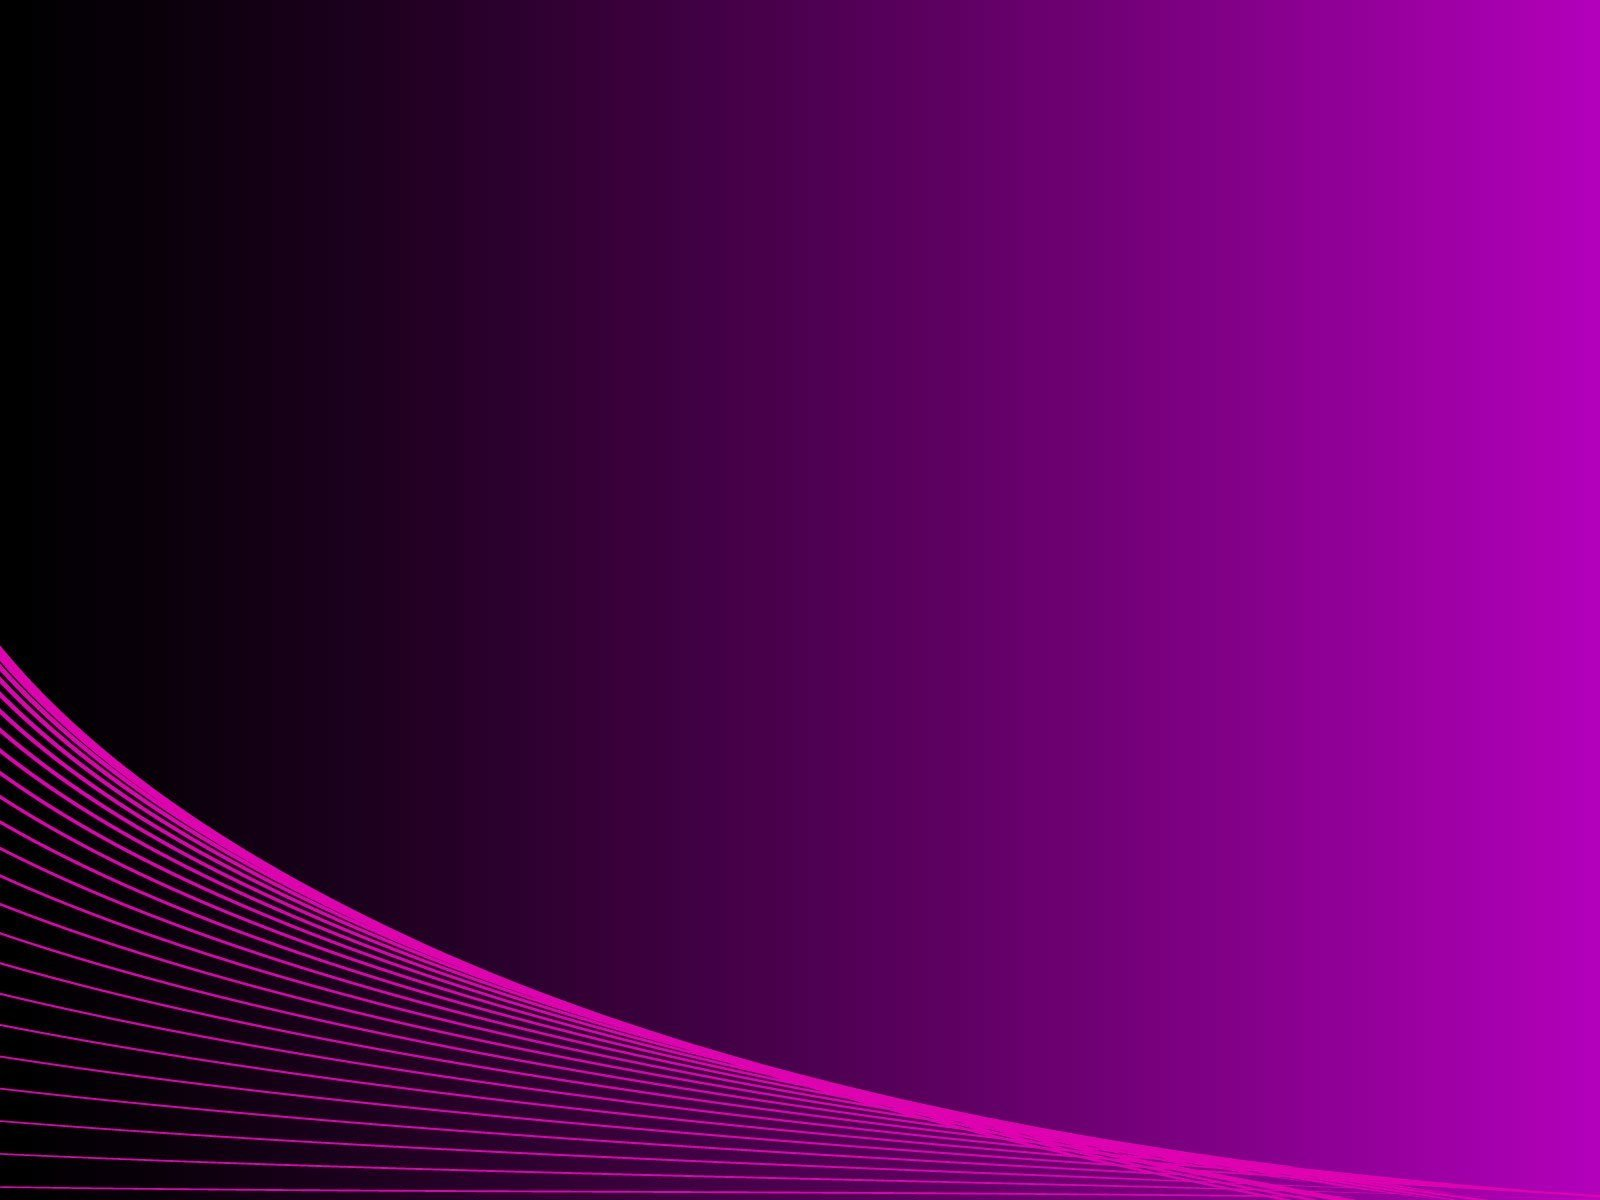 powerpoint backgrounds purple, pc powerpoint backgrounds purple, Powerpoint templates